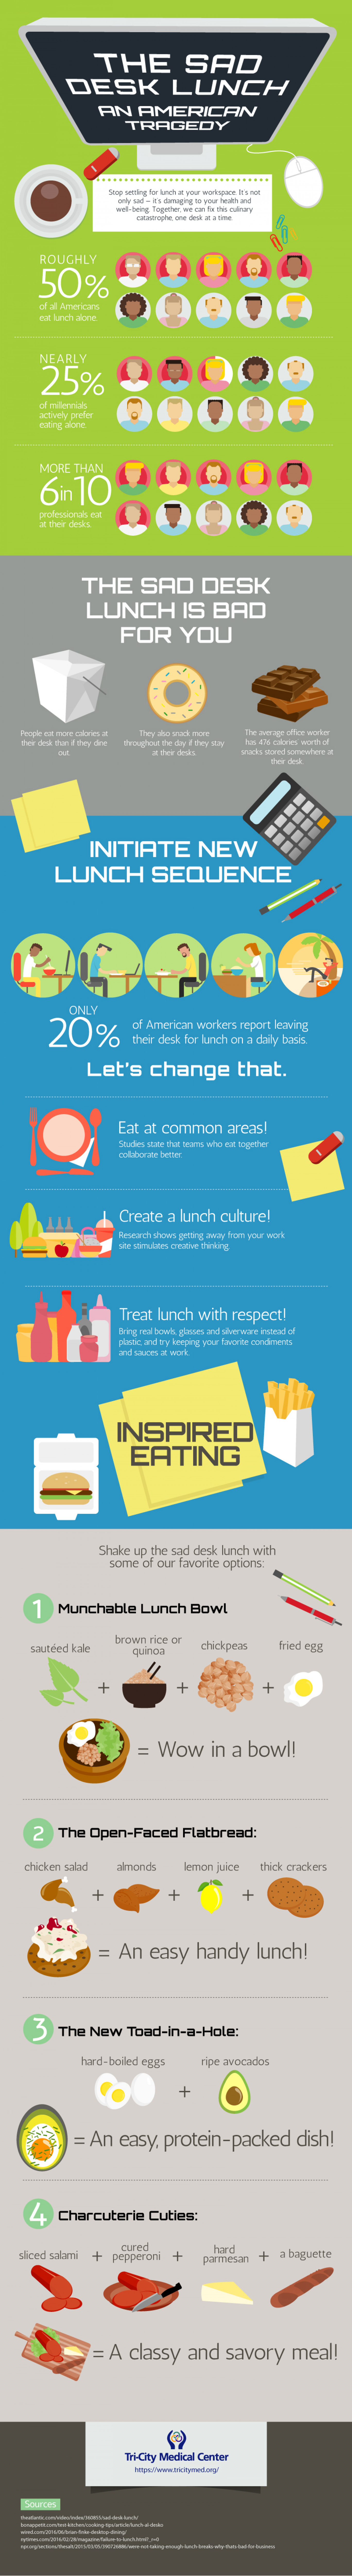 THE SAD DESK LUNCH: AN AMERICAN TRAGEDY Infographic